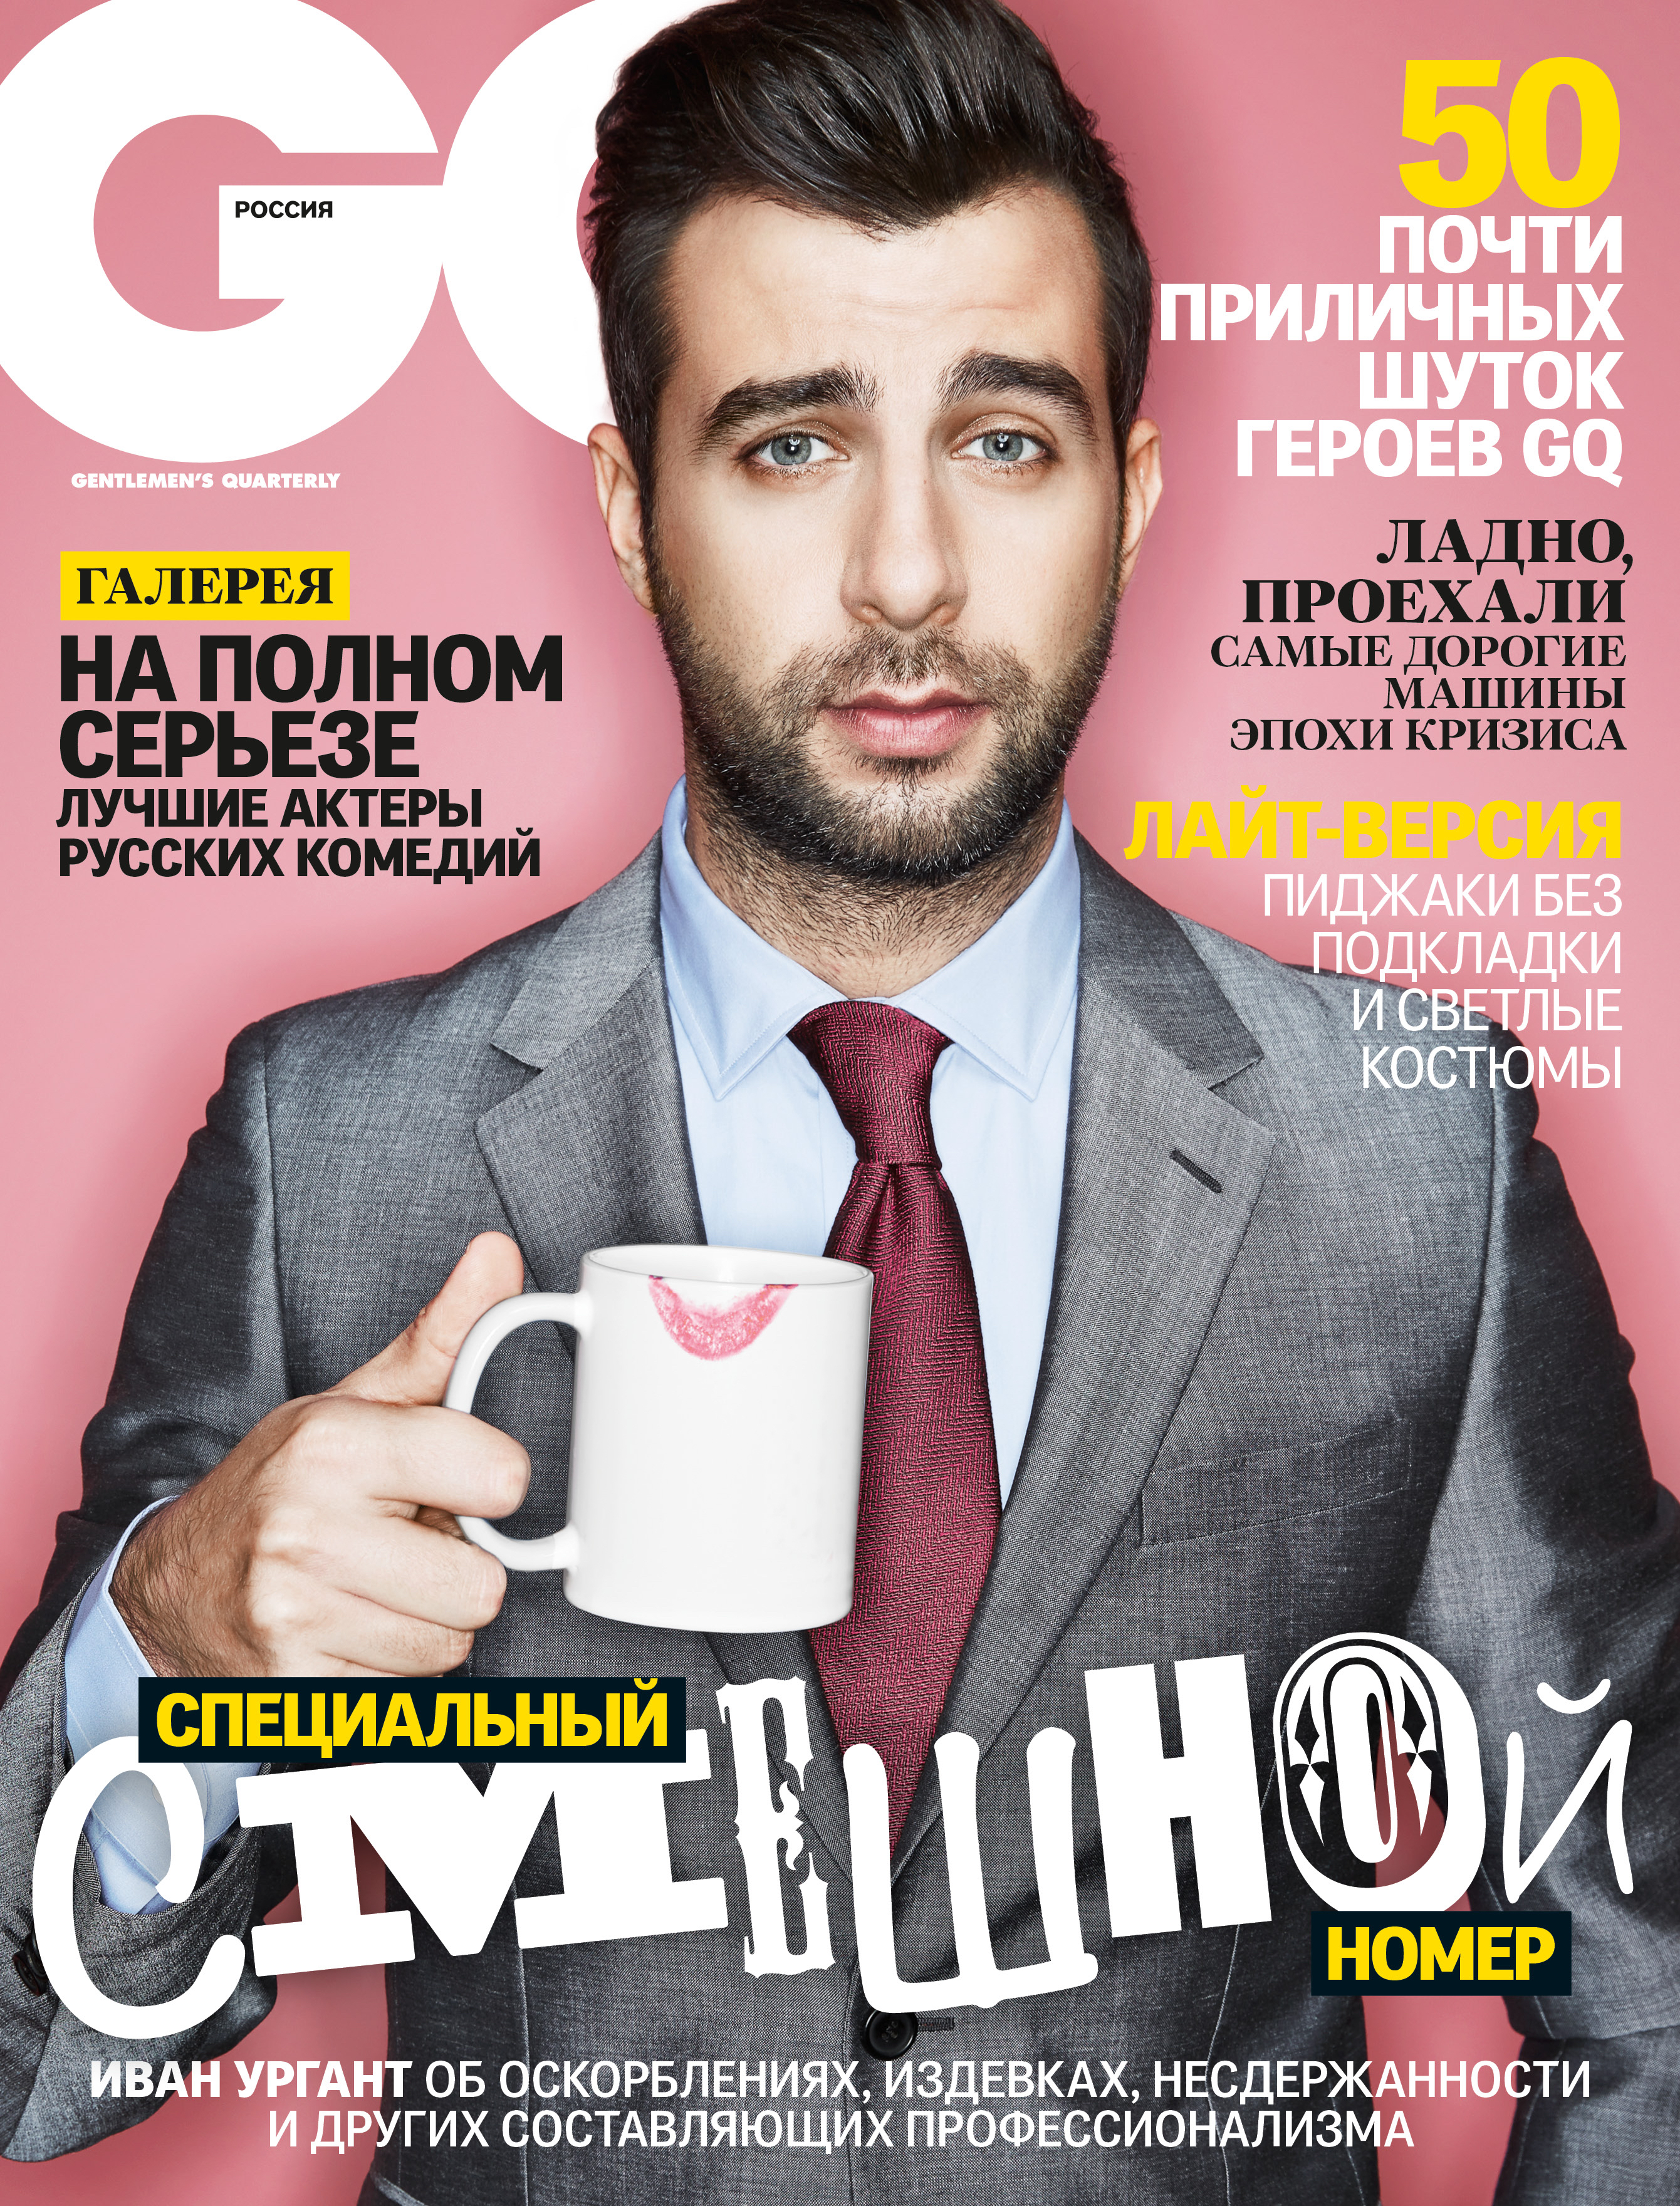 Ivan Urgant Covers May 2015 GQ Russia + Poses for Eccentric Shoot